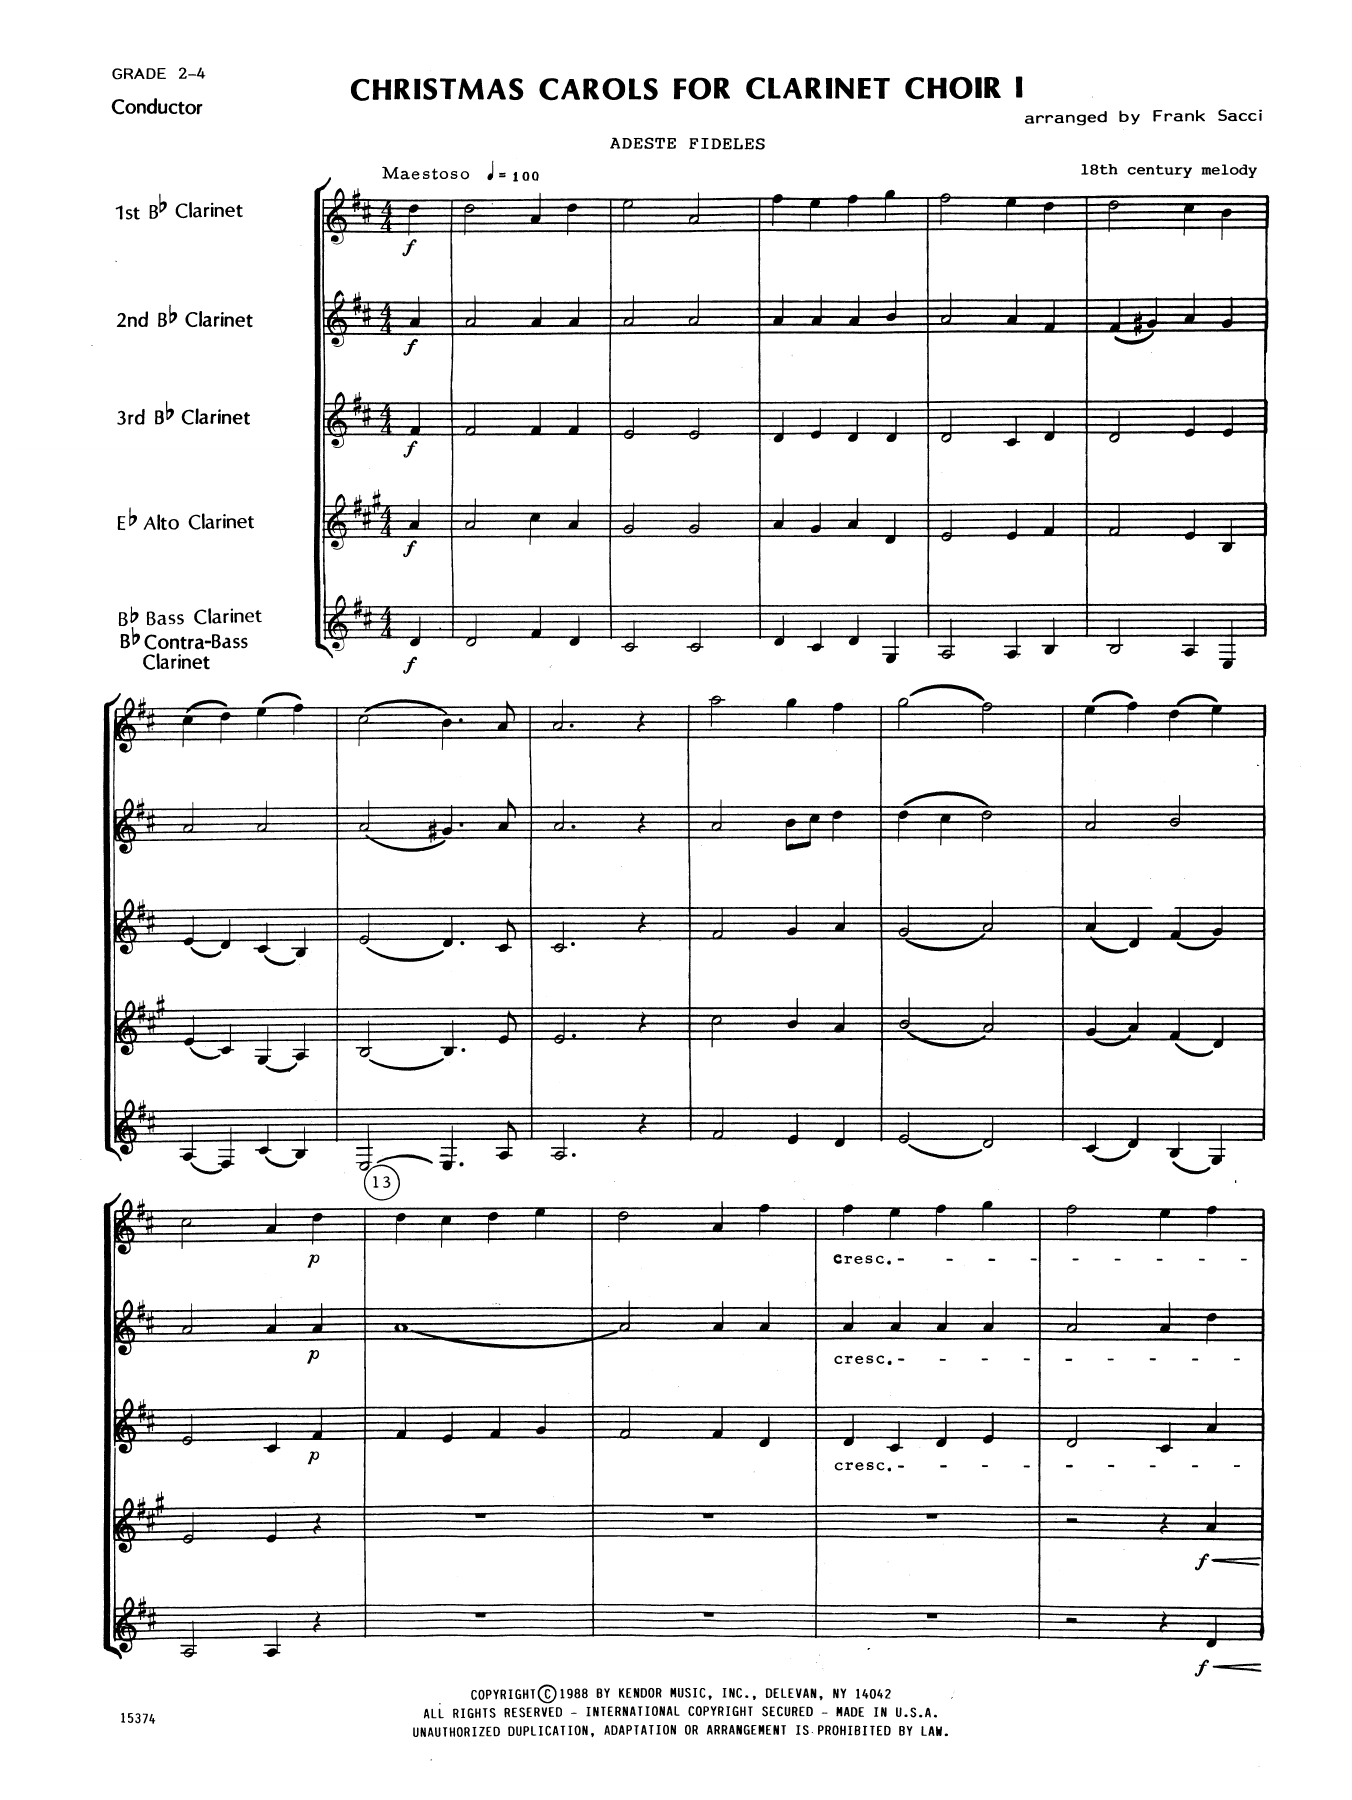 Christmas Carols For Clarinet Choir I - Full Score Sheet Music ...